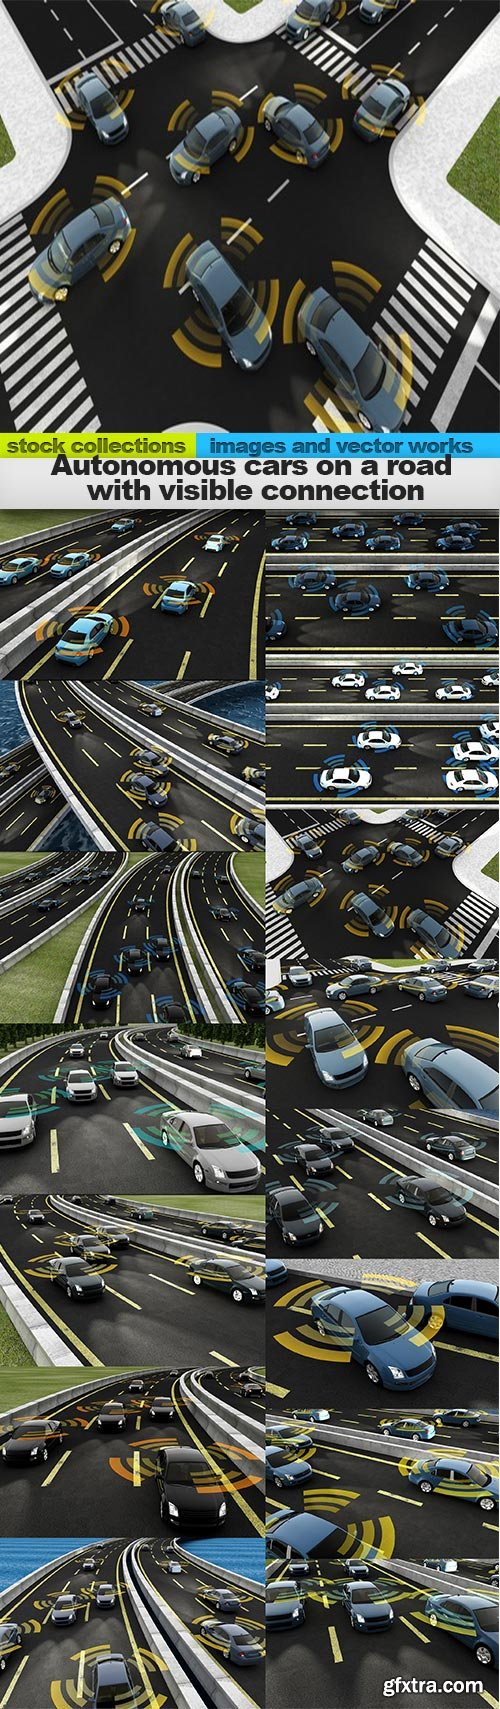 Autonomous cars on a road with visible connection, 15 x UHQ JPEG